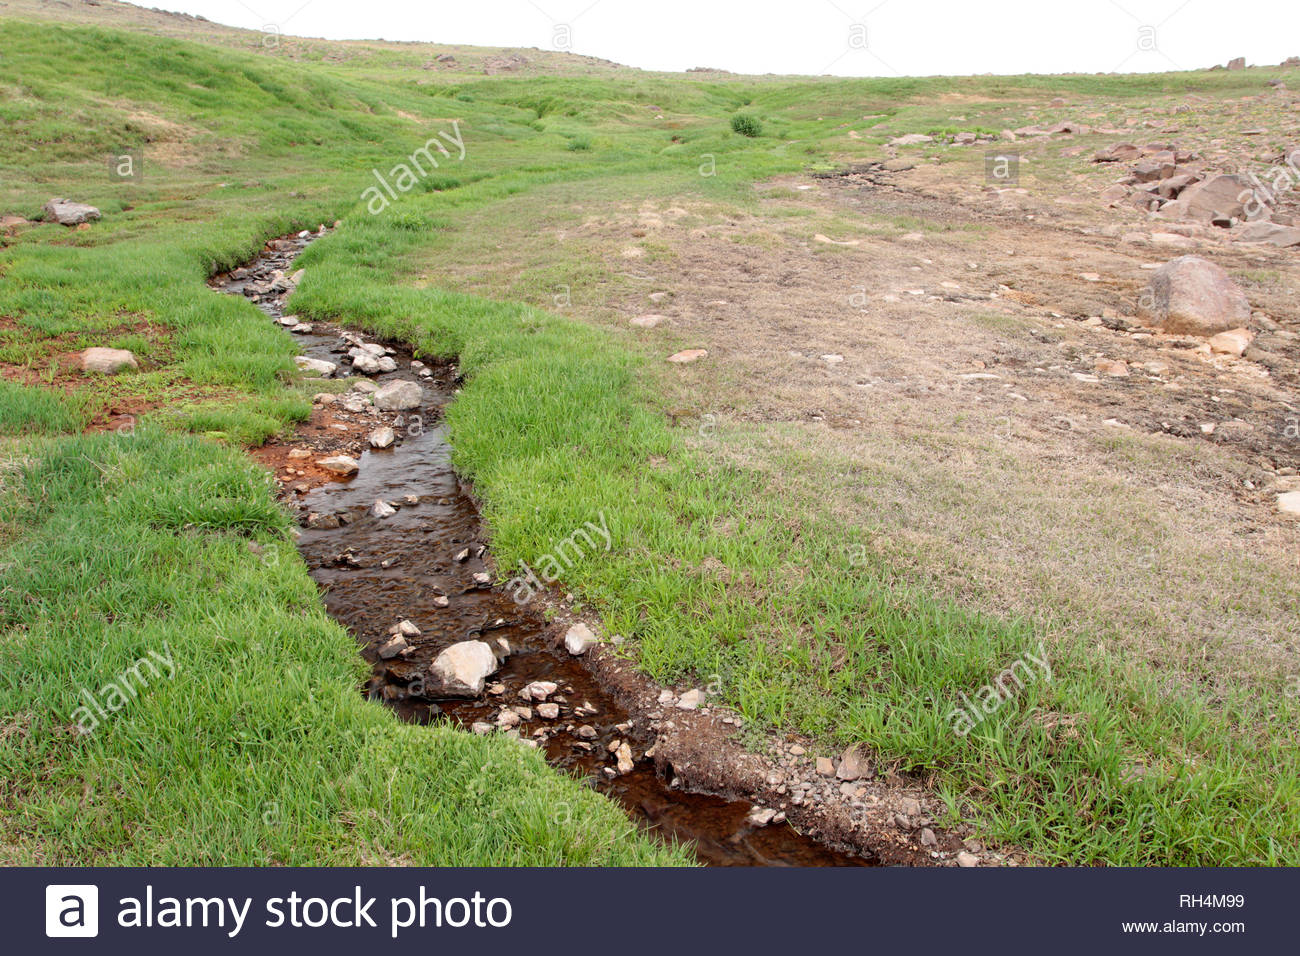 Stream near summit of Steens Mountain Wilderness, Bureau of Land Management, Oregon, USA - Stock Image